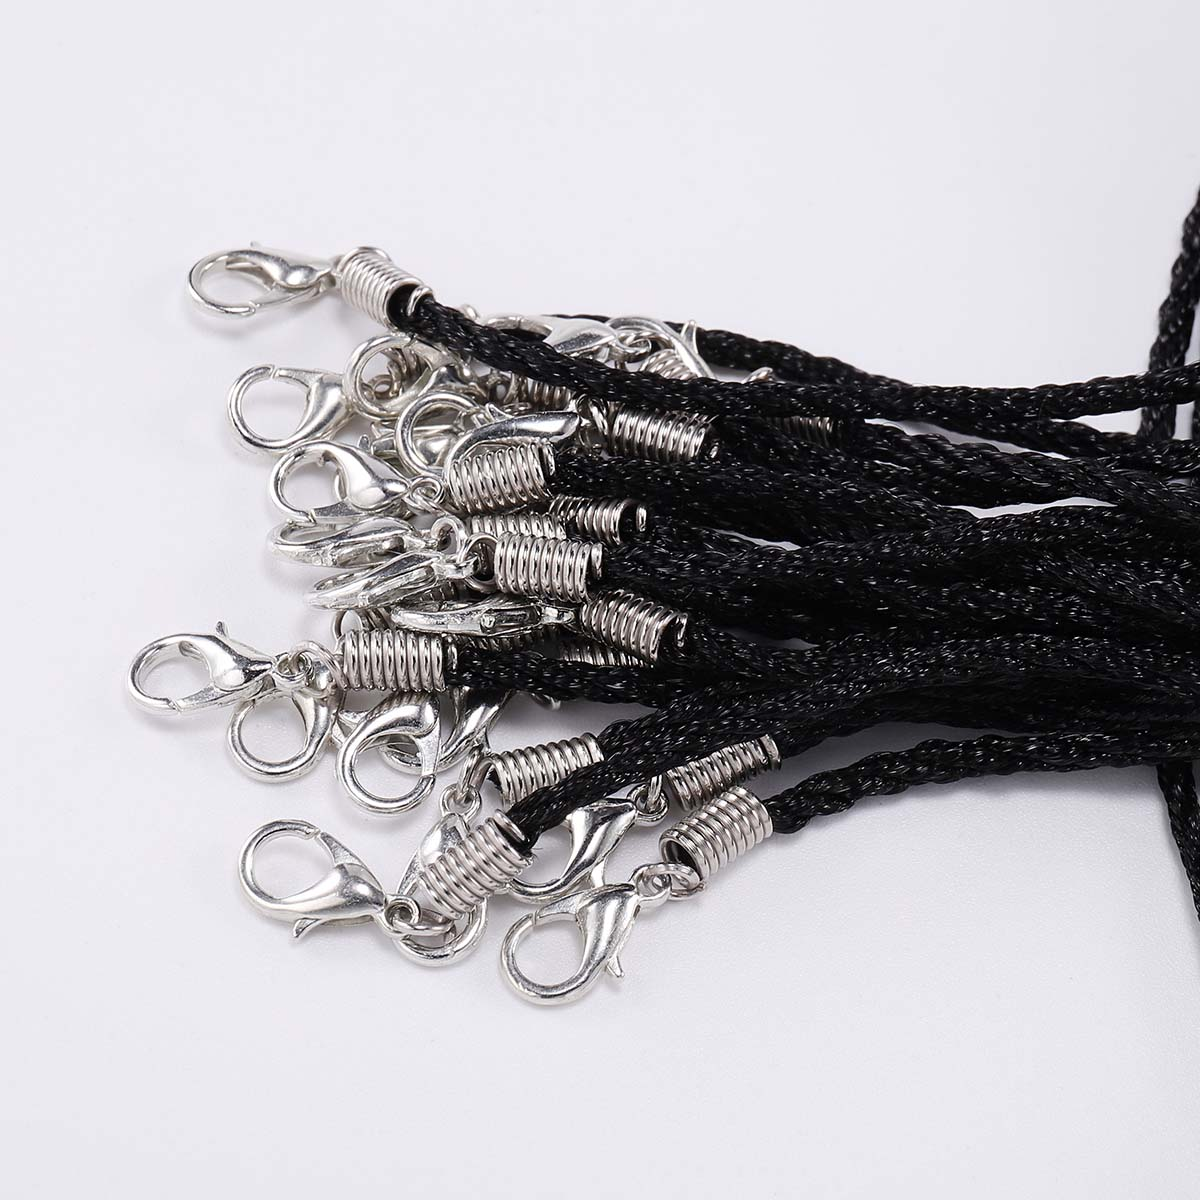 10 Pcs lot Dia 1 8mm Handmade Adjustable Braided Rope Nylon cord Necklace For Pendant Charms Findings Lobster Clasp String Cord in Jewelry Findings Components from Jewelry Accessories